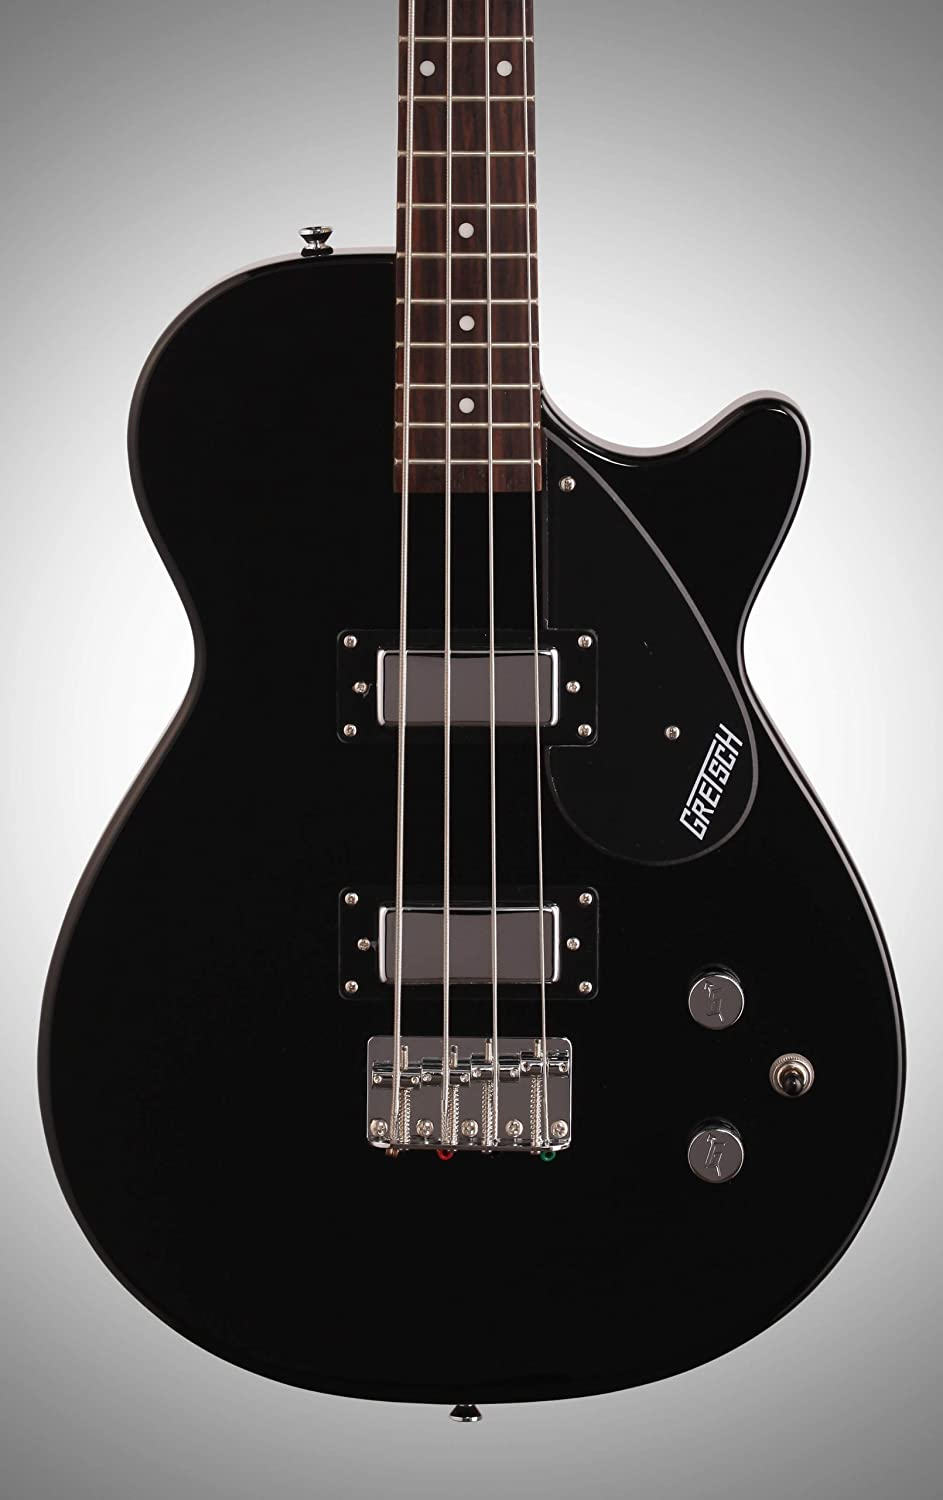 Gretsch G2220 Junior Jet Electric Bass Guitar II - Black 71SIXiSJjzLSL1500_